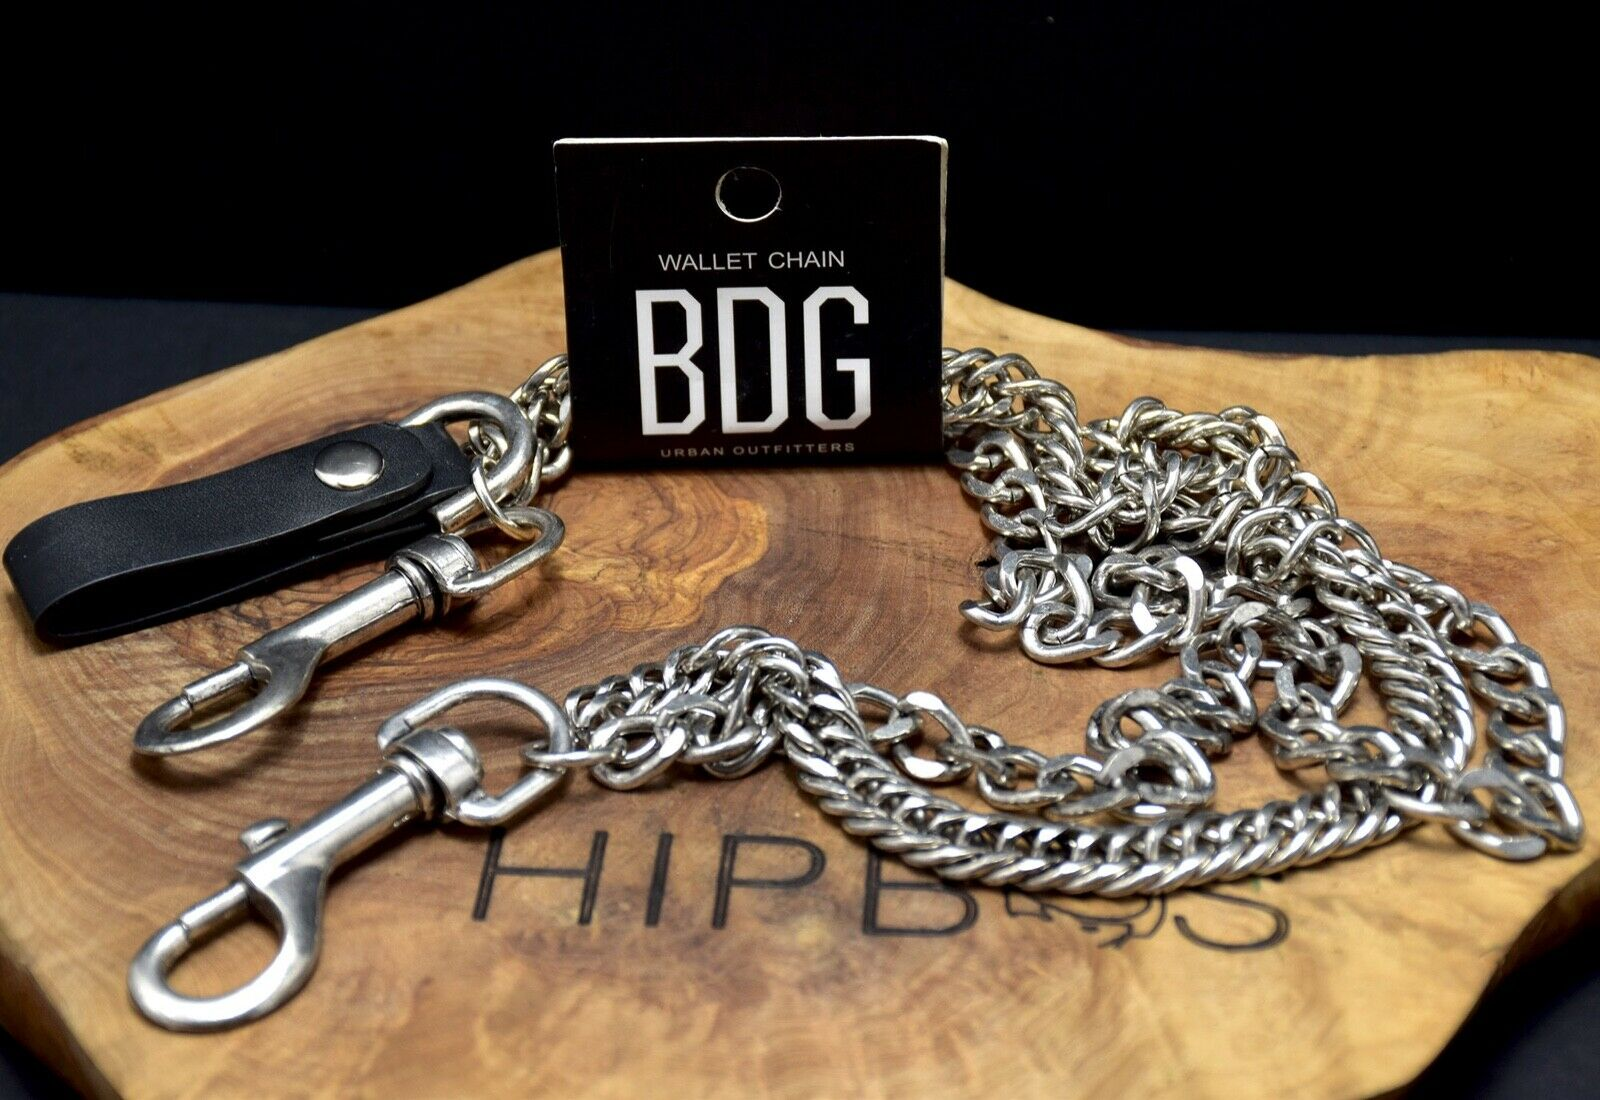 Urban Outfitters BDG Silver Metal Double Chain Wallet Clip Retro 90s